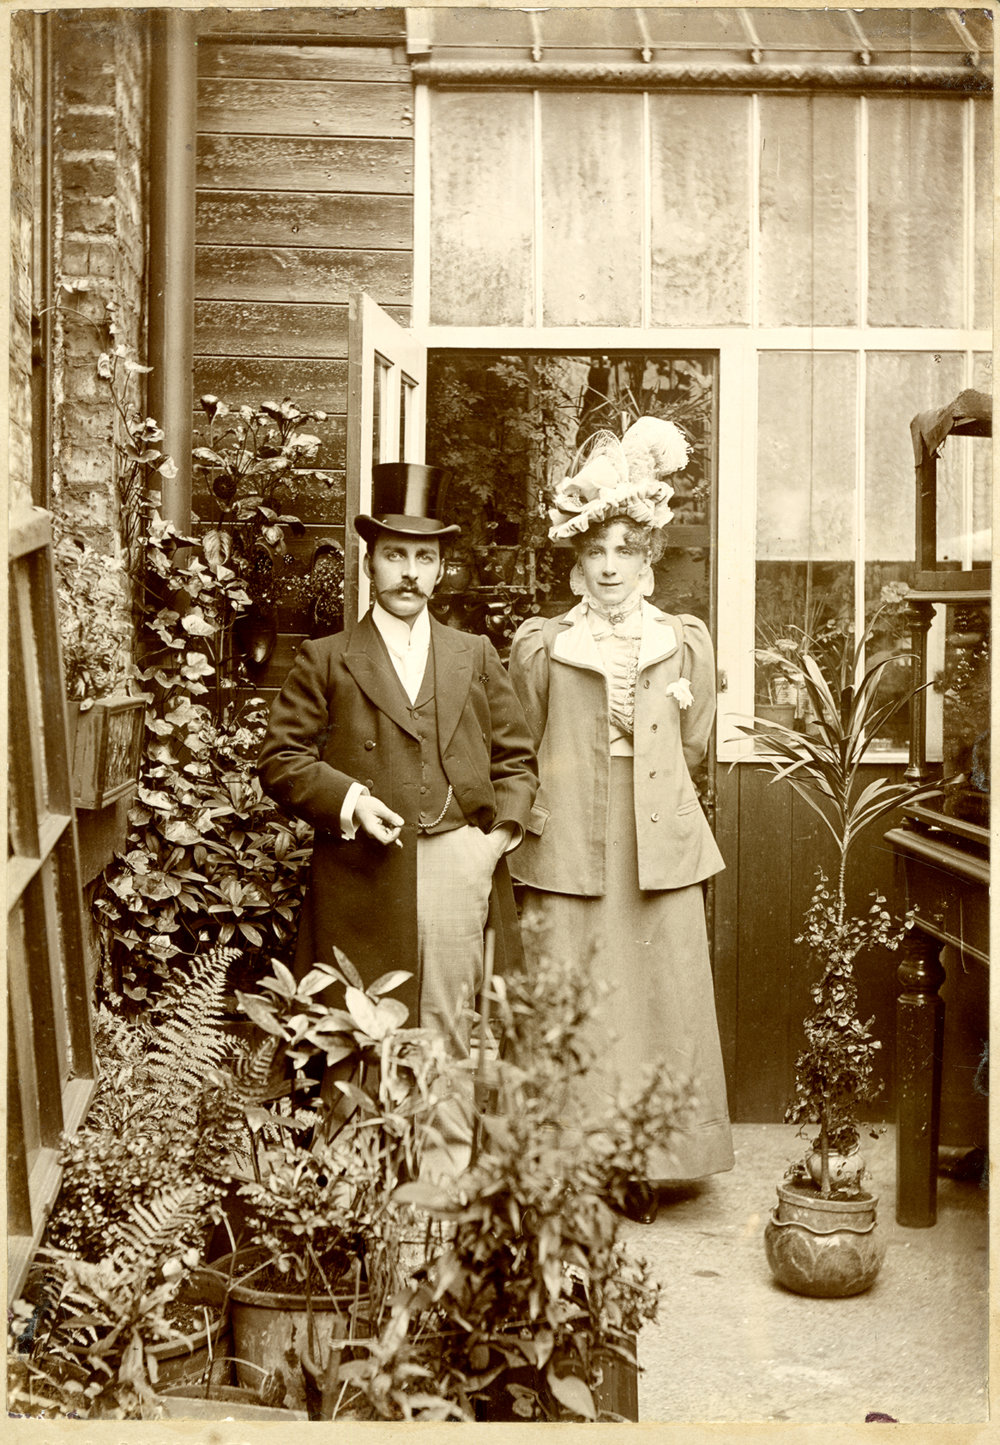 Surrounded by potted plants and climbing ivy, a well dressed couple pose by a green house door - about 1900